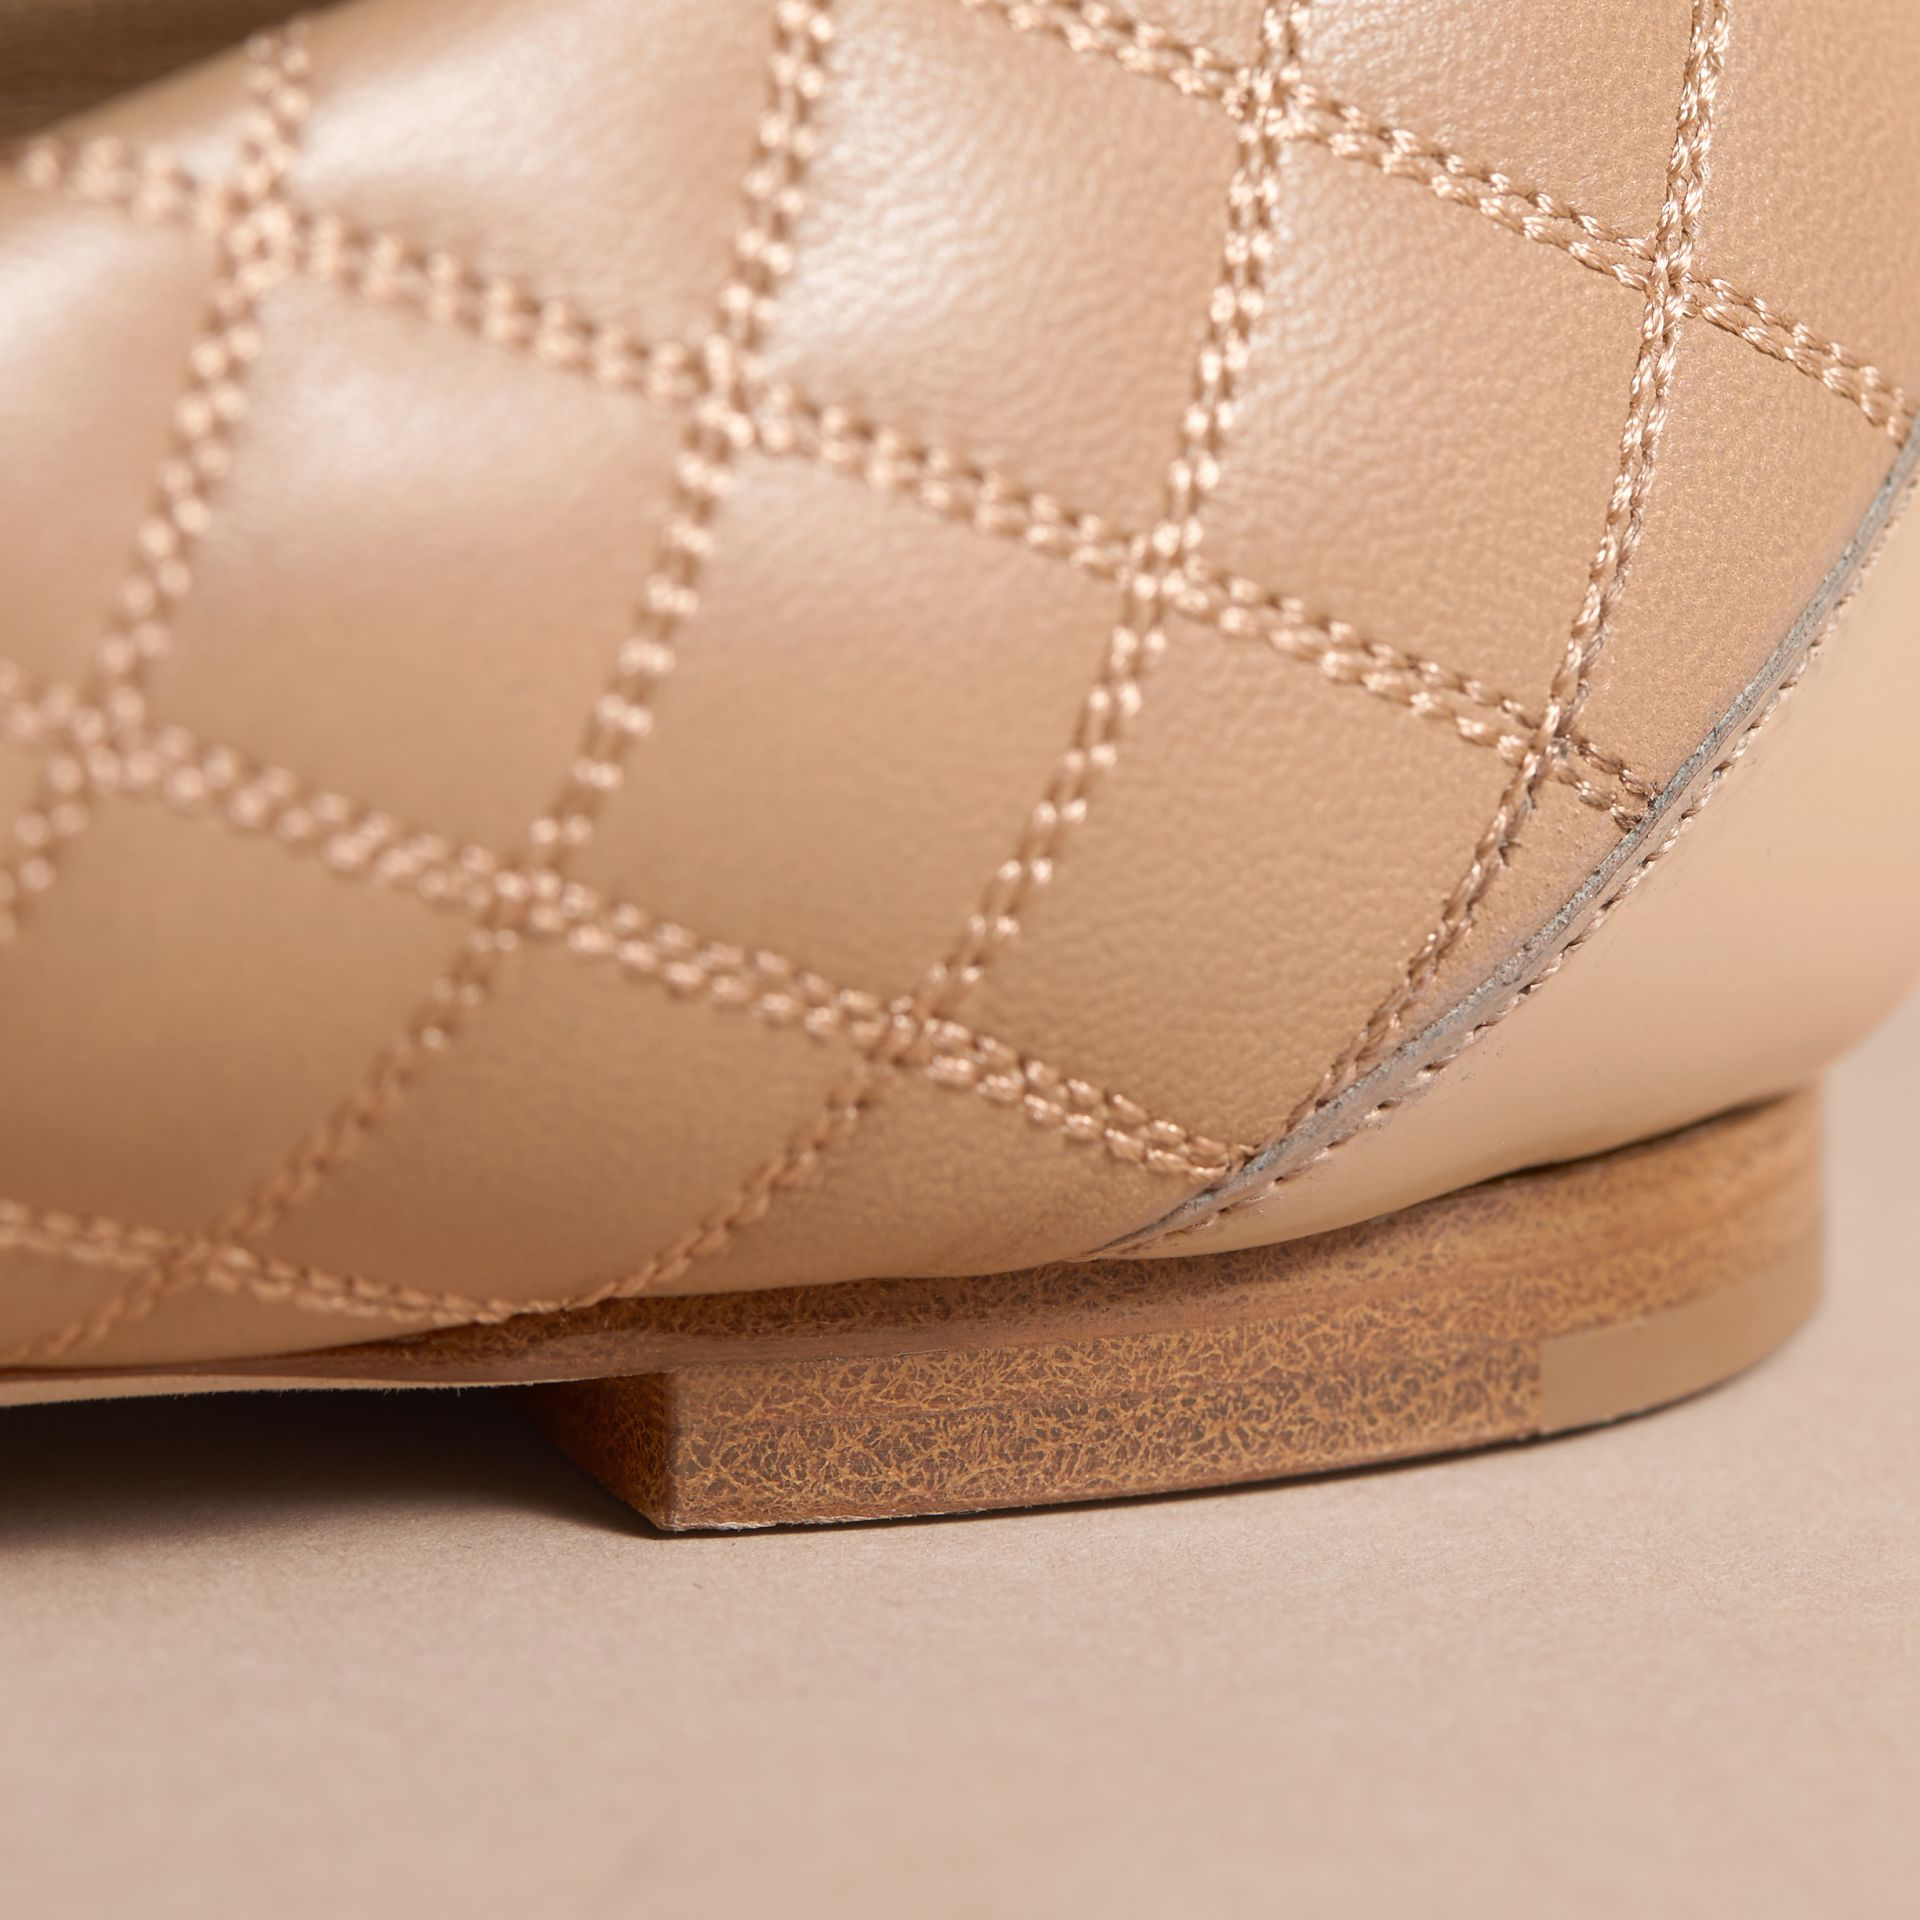 Buckle Detail Quilted Lambskin Leather Ballerinas in Honey - Women | Burberry Canada - gallery image 5